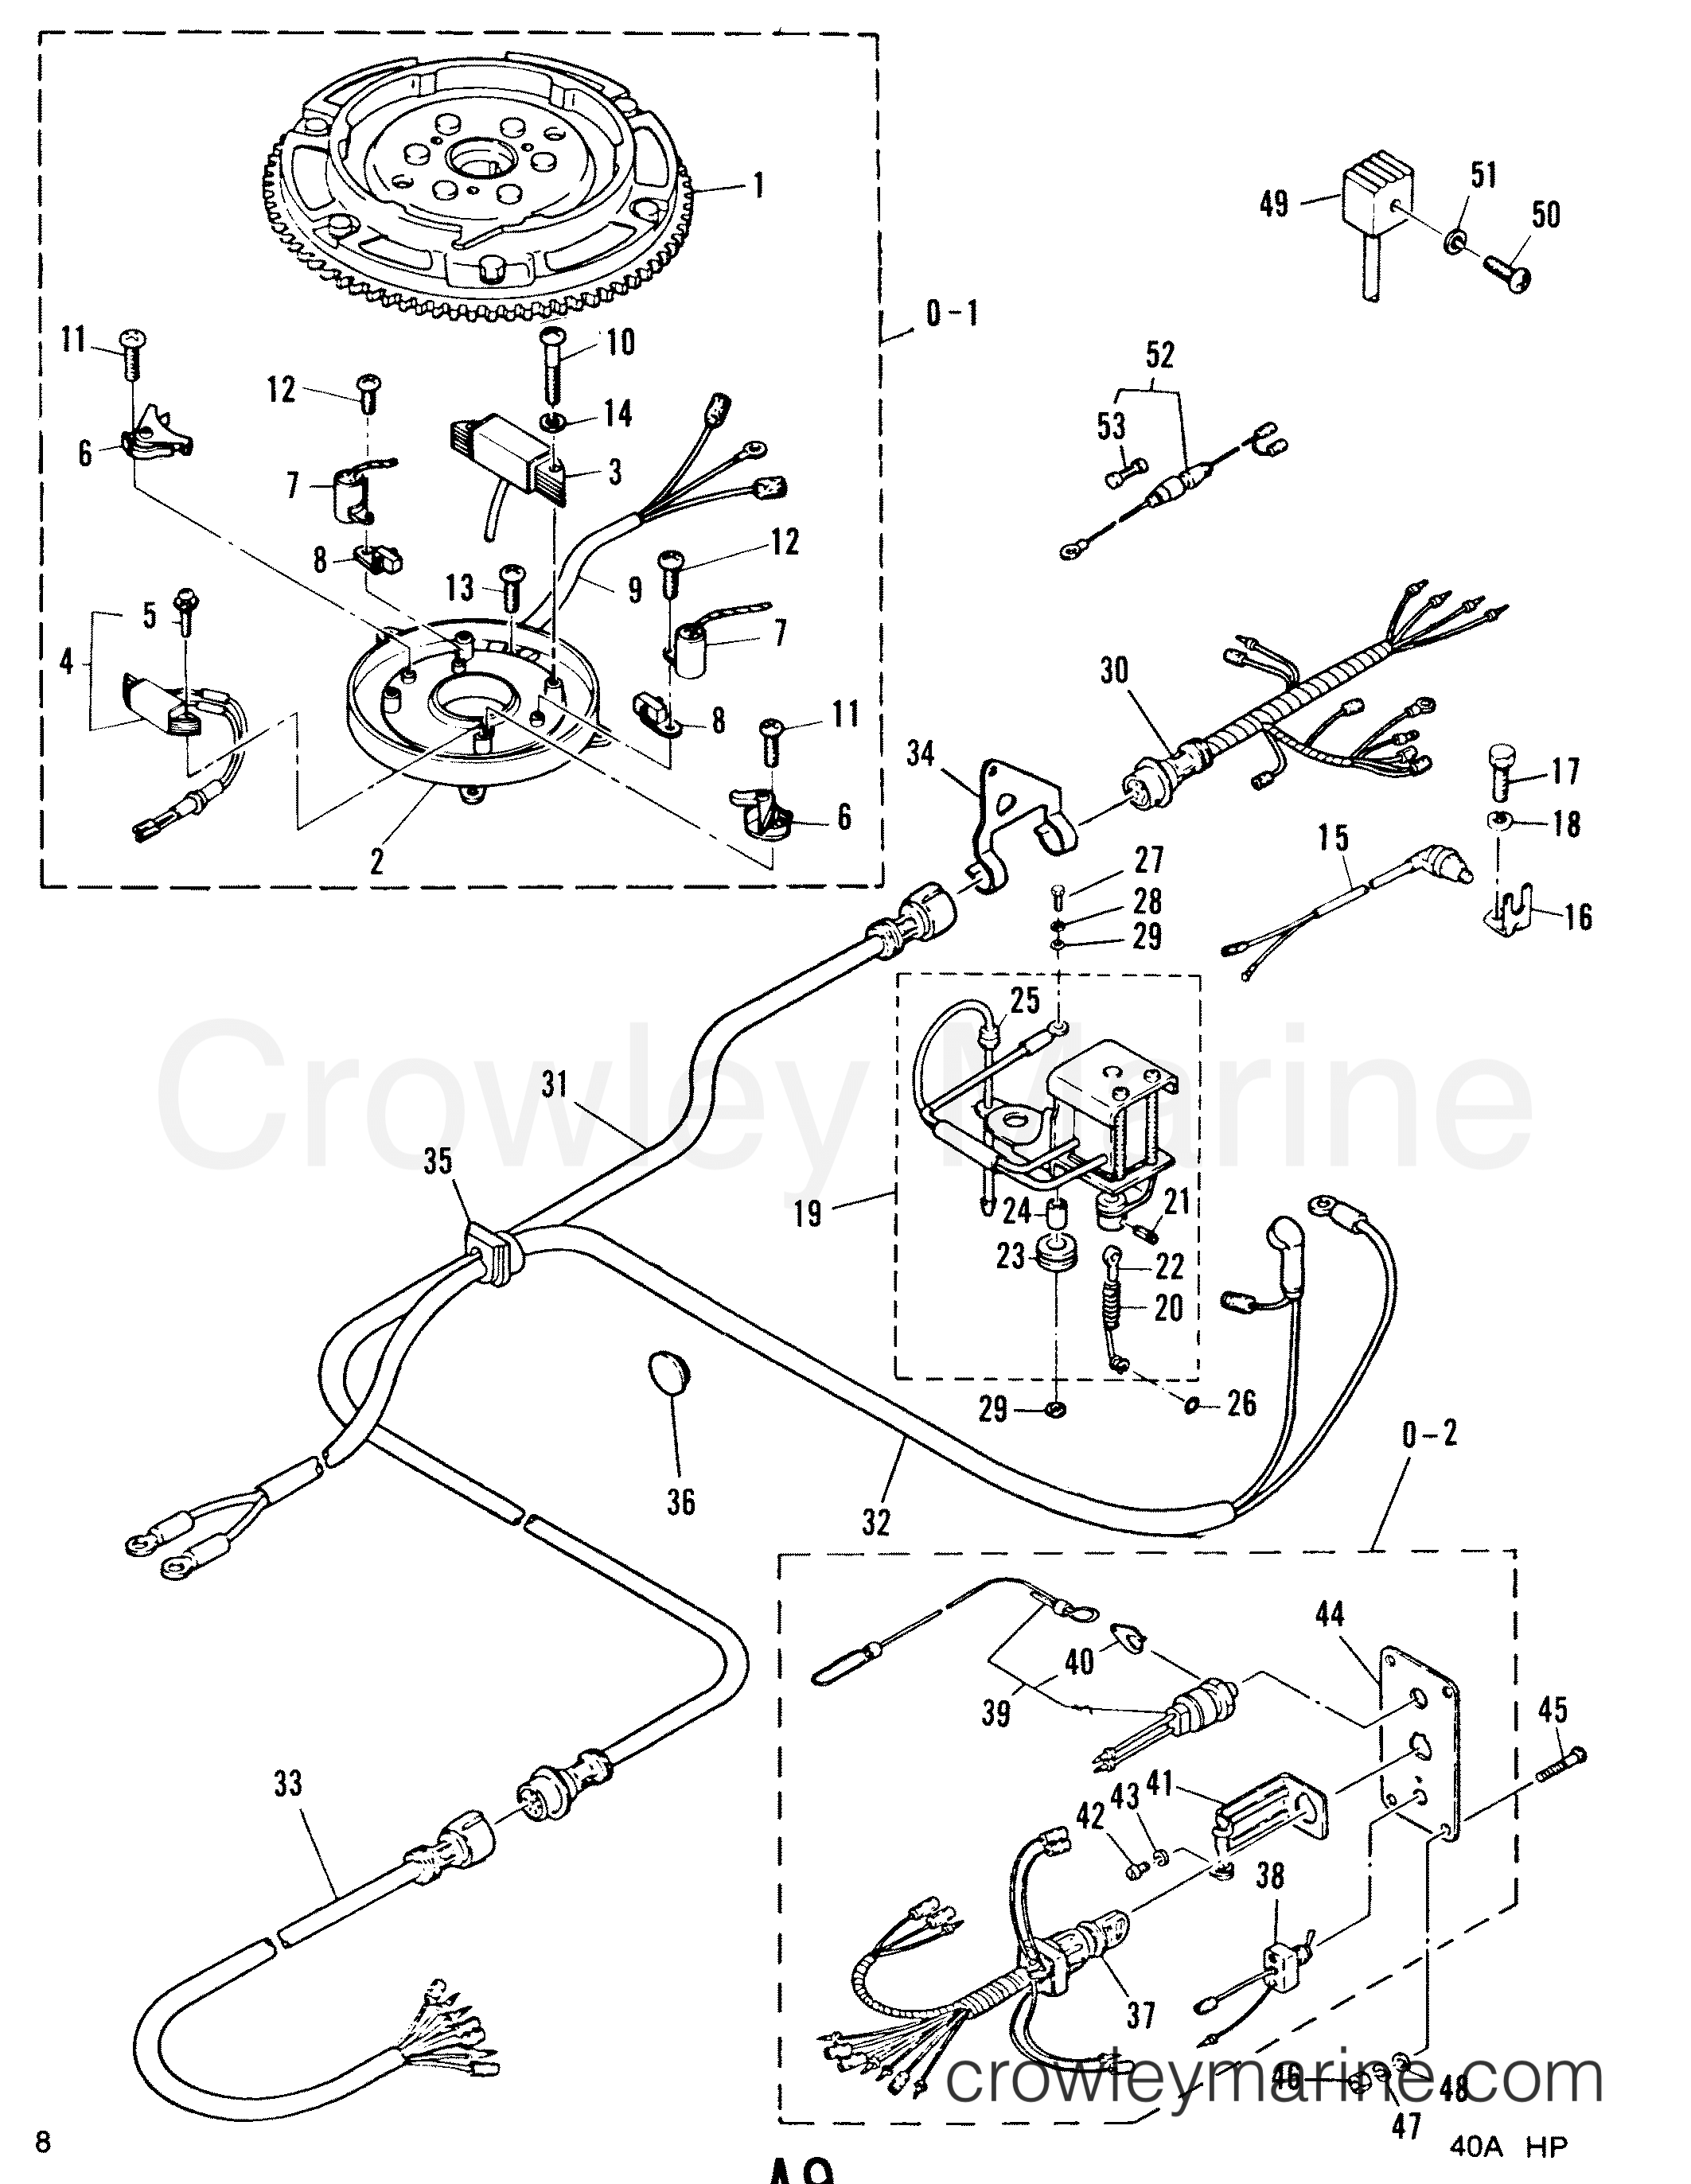 Farmall H Magneto Diagram - Wiring Diagrams List